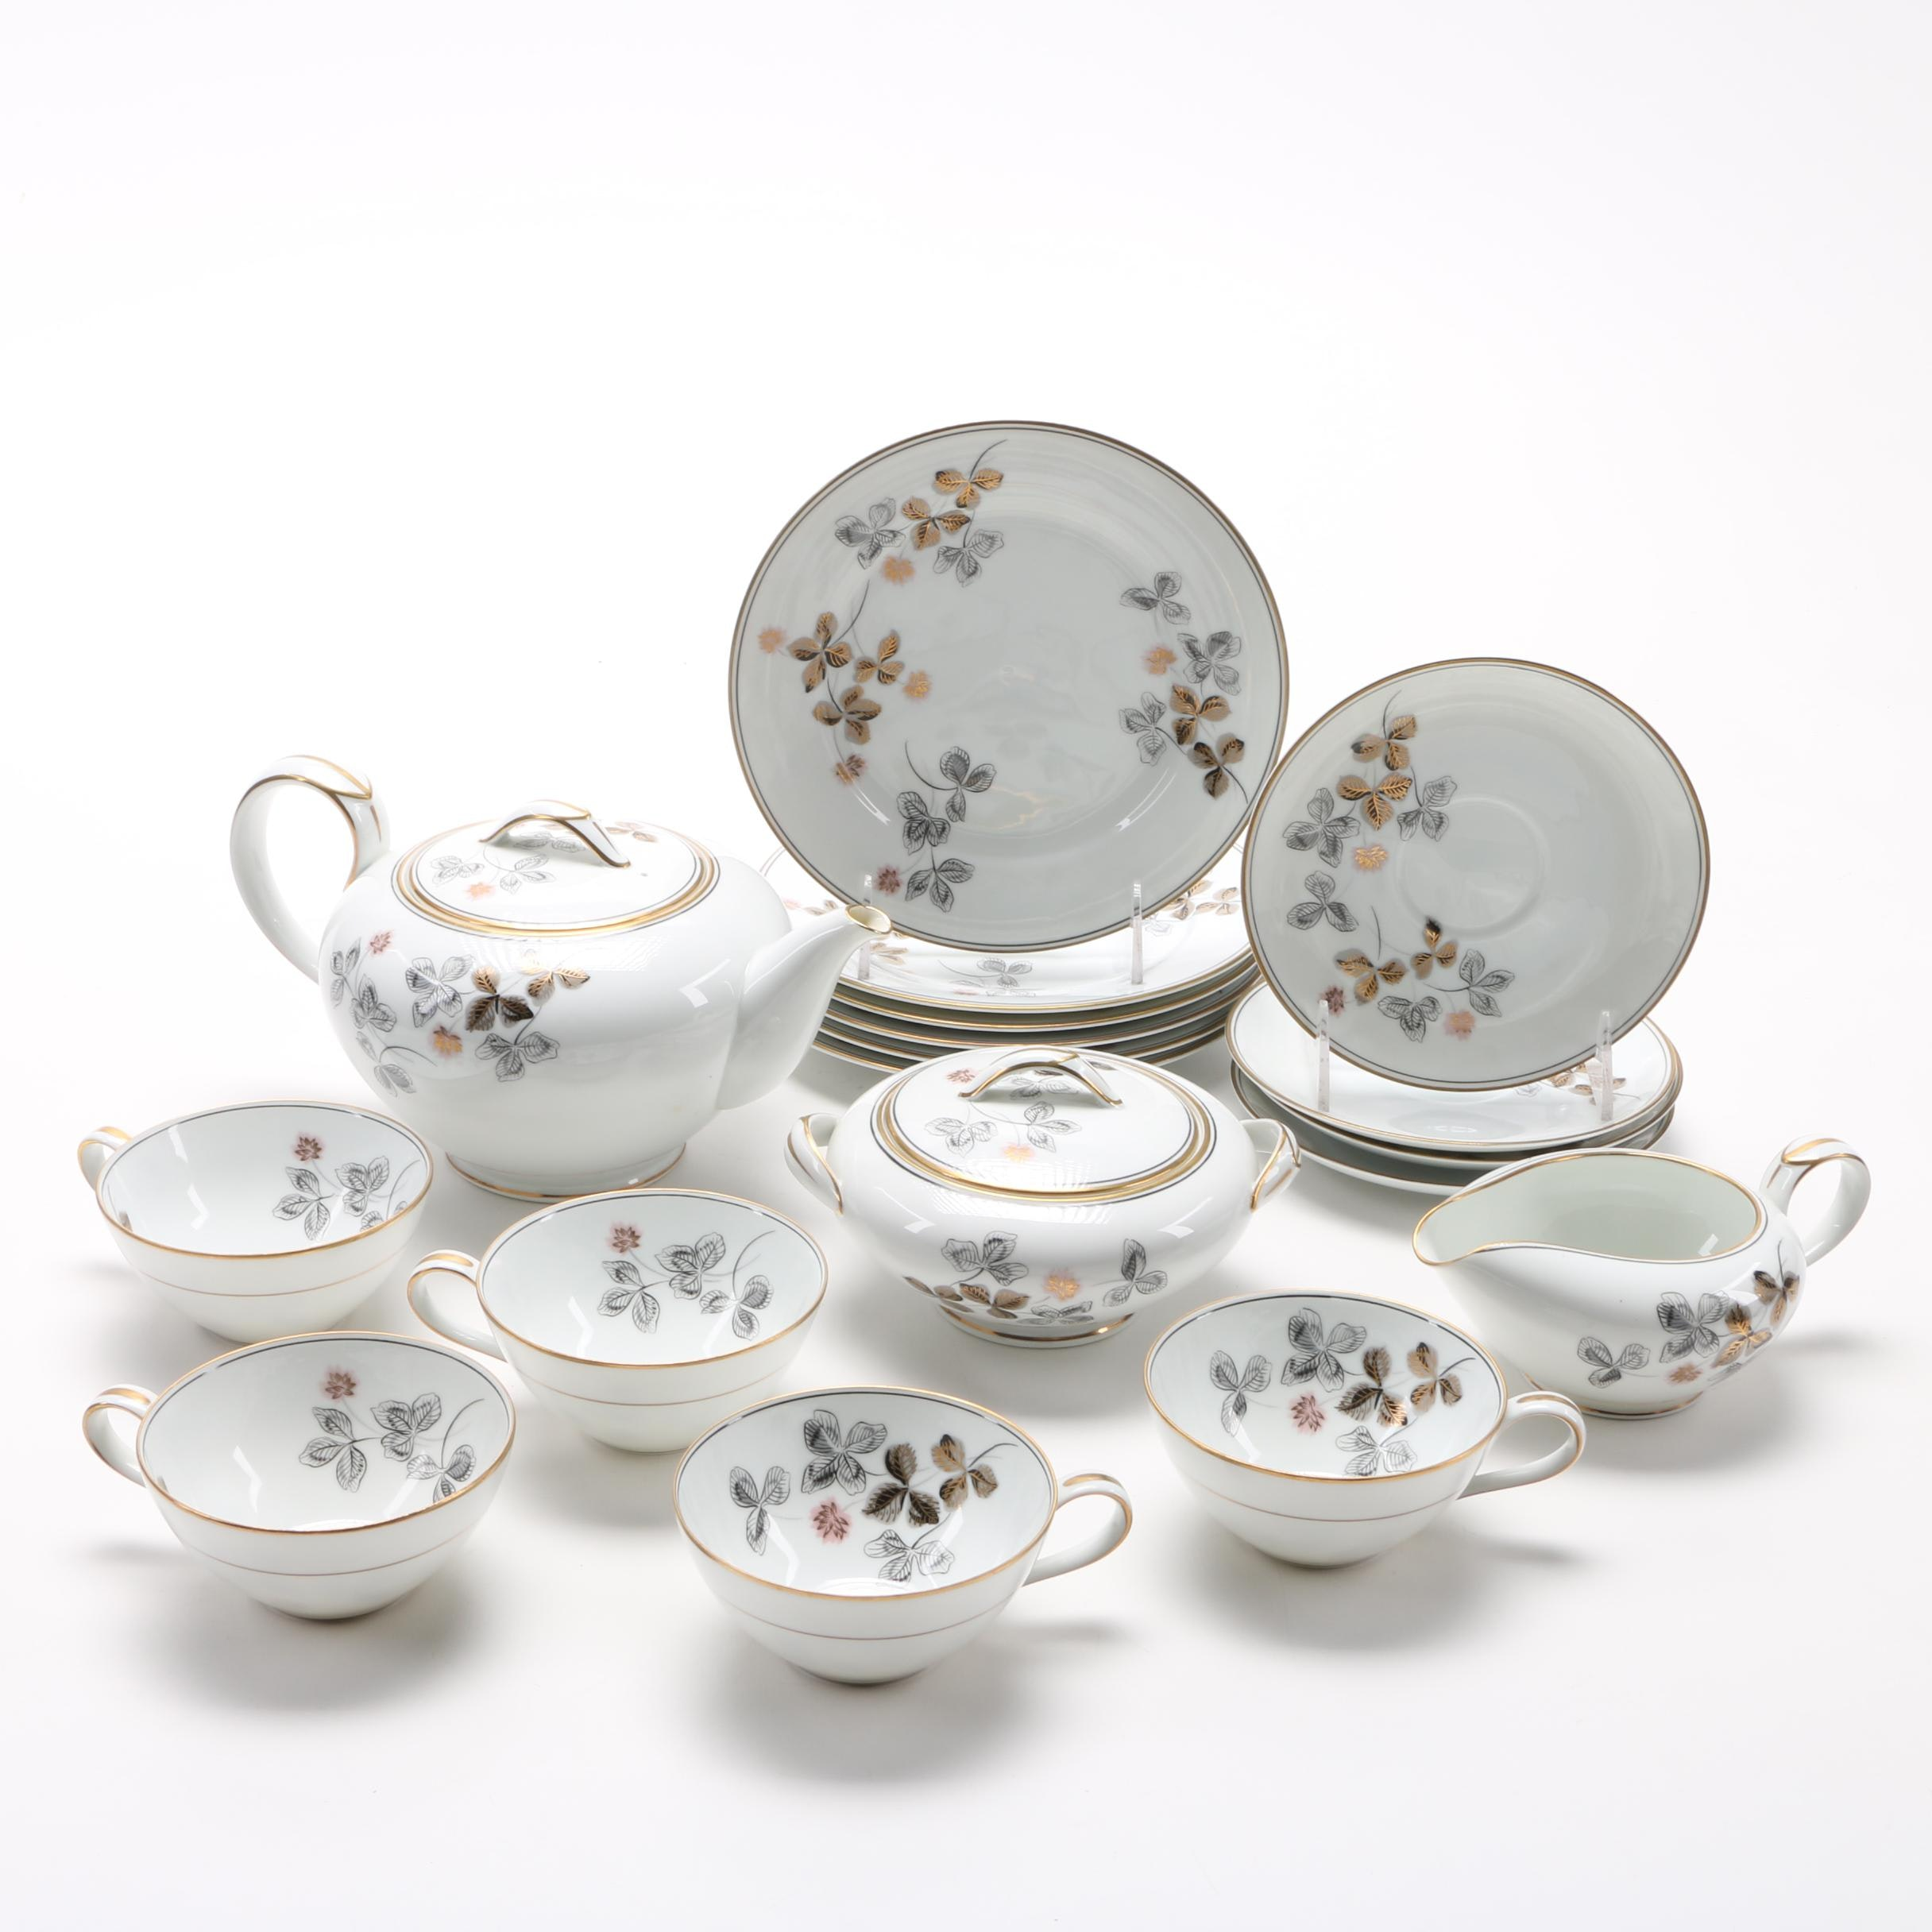 Noritake Tea Set with Dessert Plates ...  sc 1 st  EBTH.com & Noritake Tea Set with Dessert Plates : EBTH